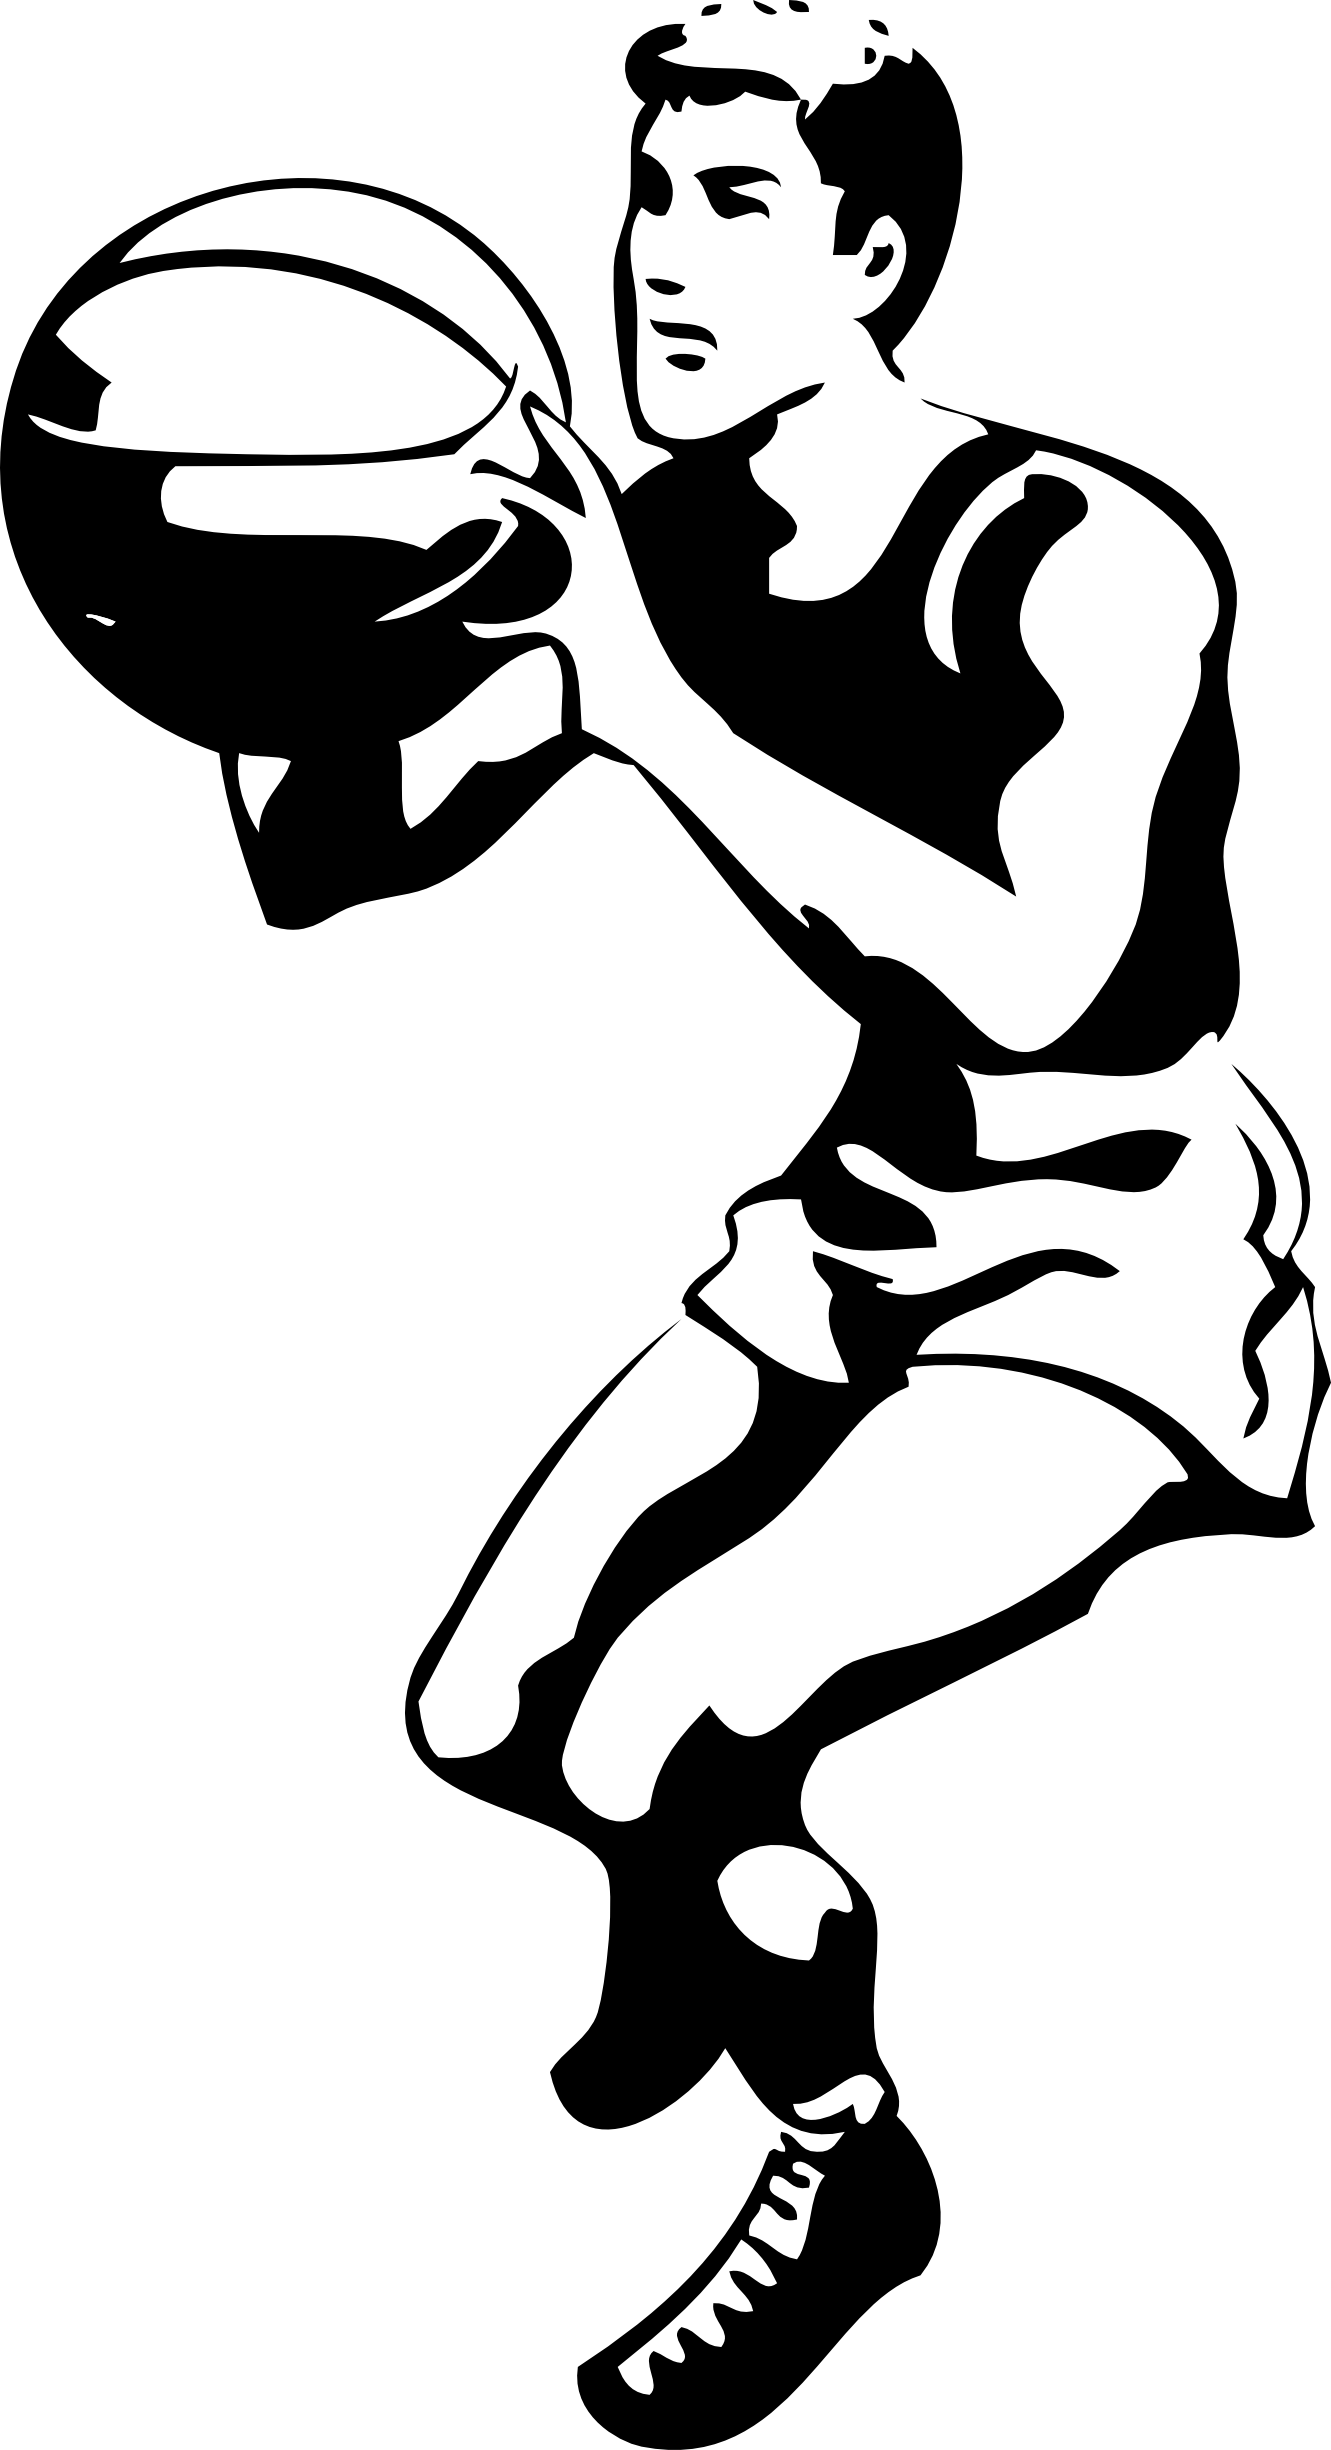 Line Art Images Free : Basketball player clipart black and white panda